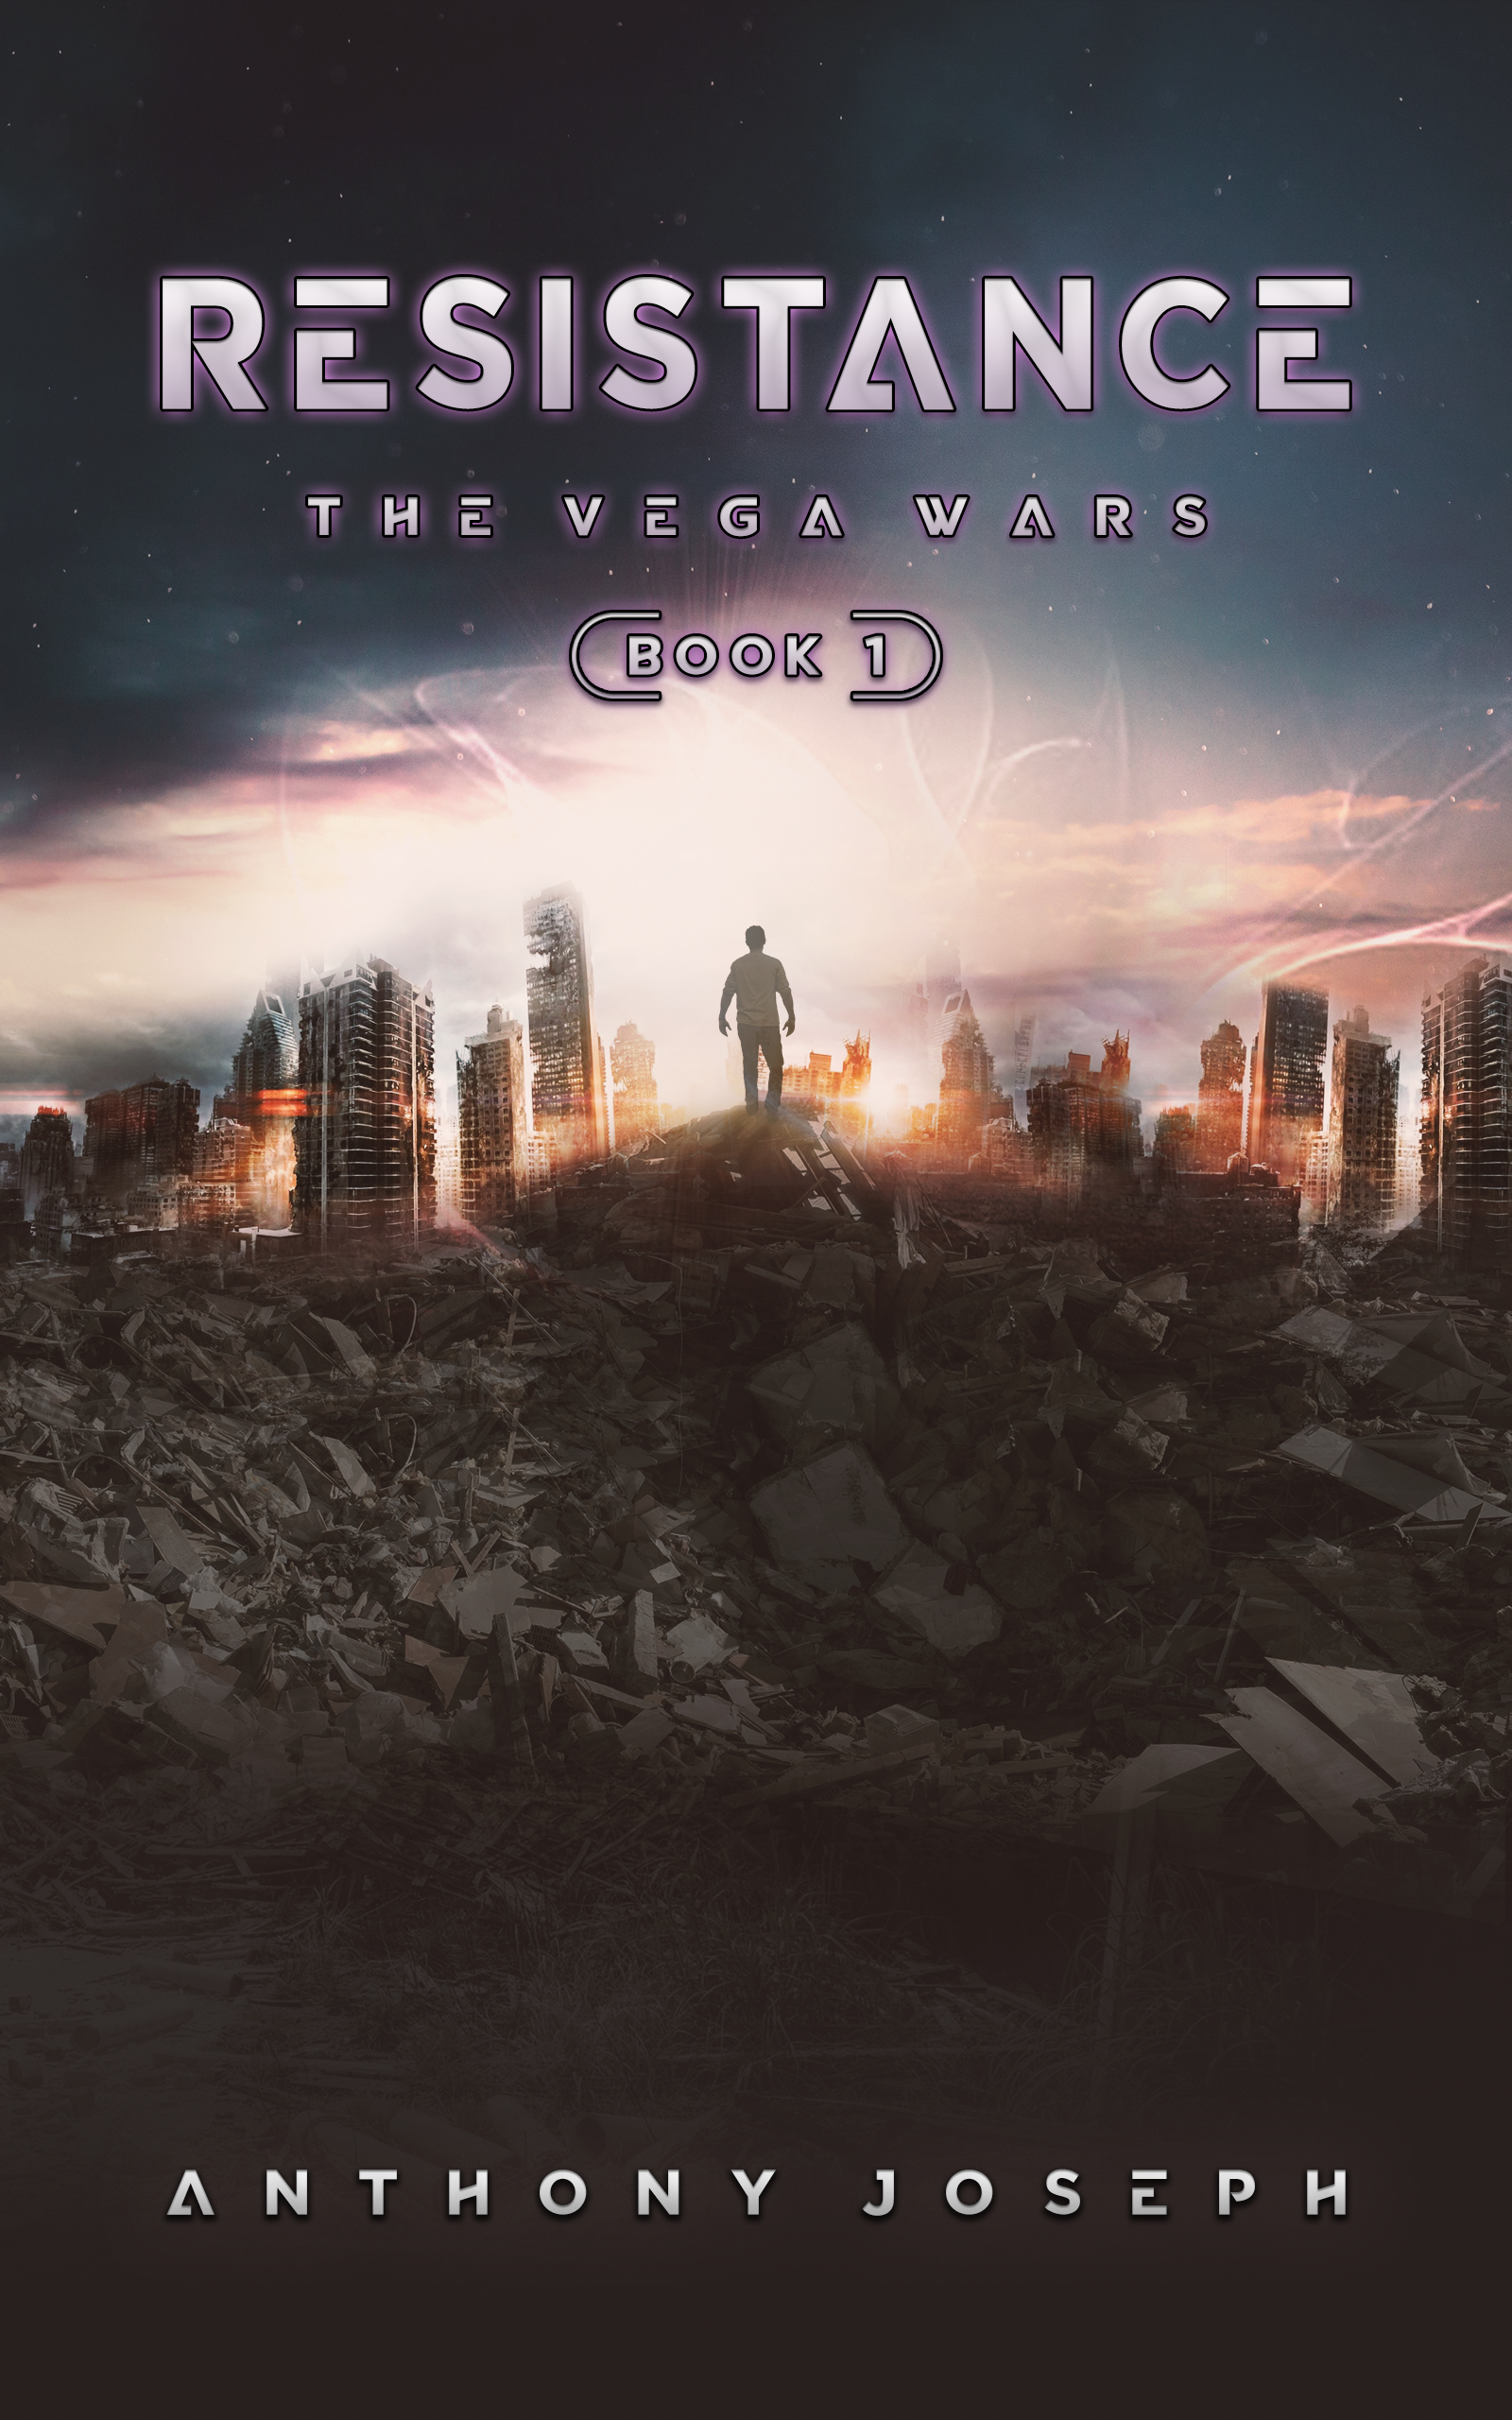 The Vegas Wars Book 1 book cover